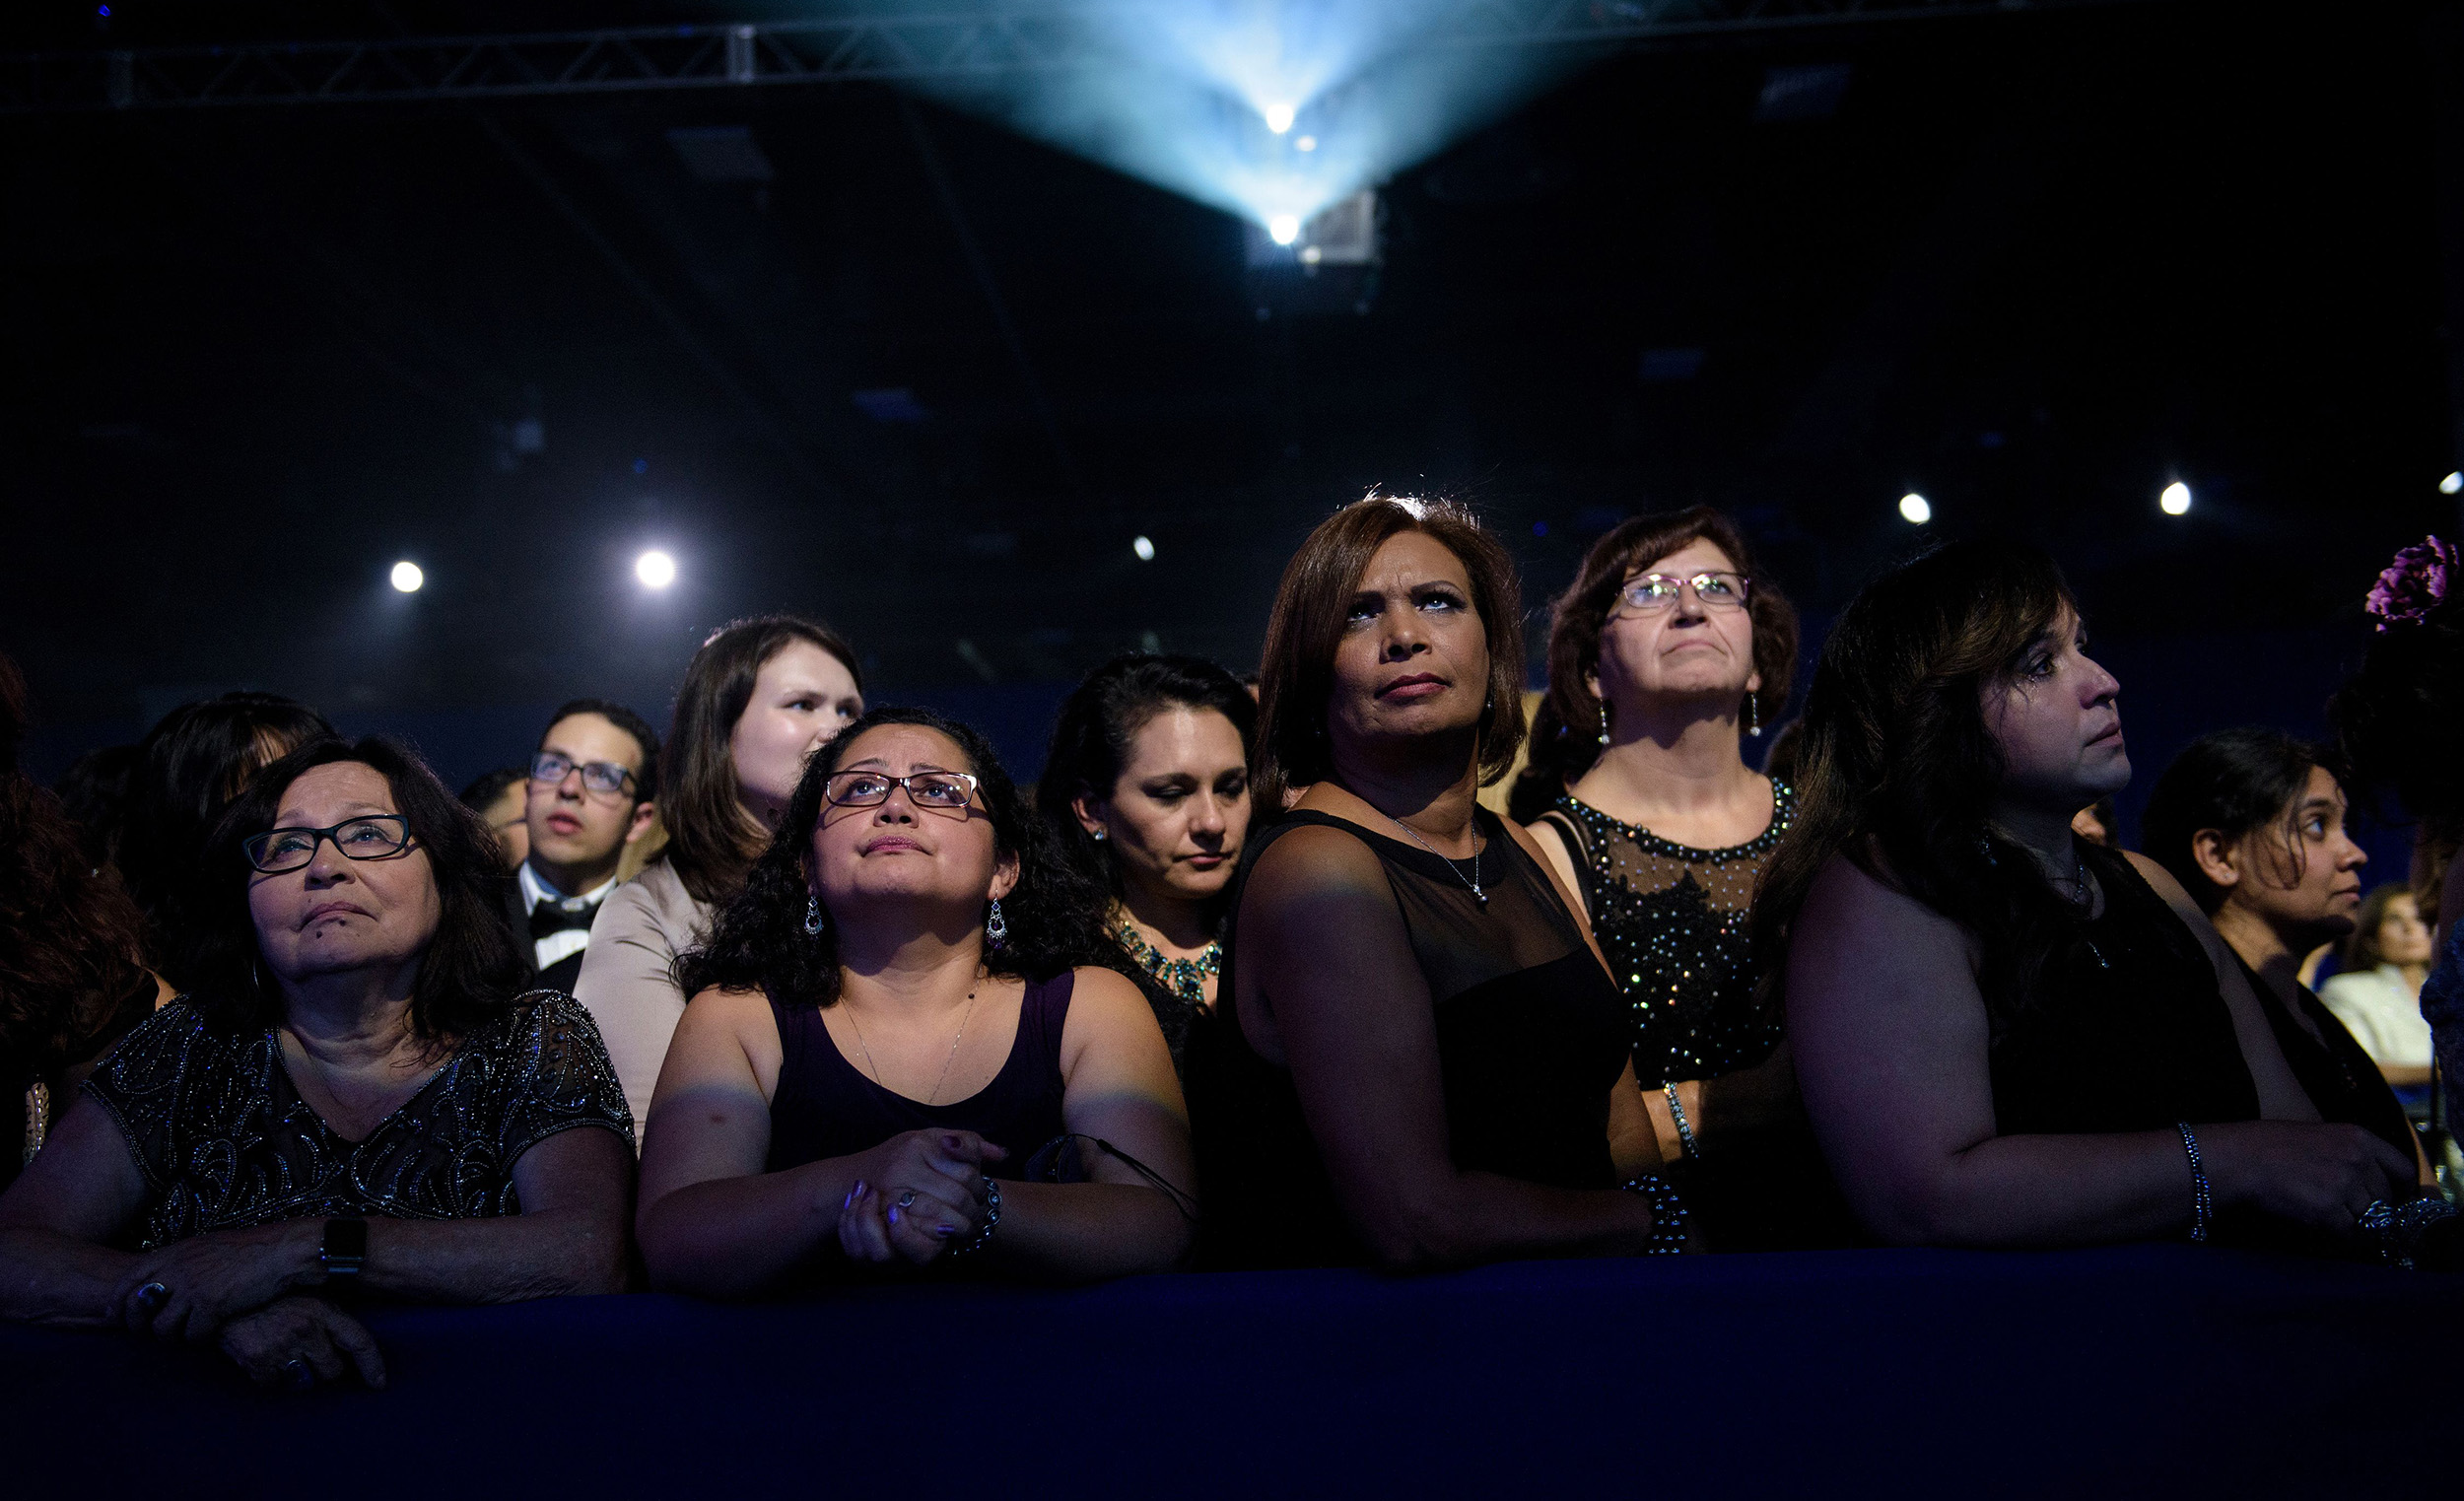 TOPSHOT - People listen as Democratic presidential nominee Hillary Clinton speaks during the Congressional Hispanic Caucus Gala September 15, 2016 in Washington.Hillary Clinton returned Thursday to the campaign fray in a tightening race against Republican Donald Trump, who released new details of his physical fitness in response to the health scare that sidelined his rival. / AFP / Brendan Smialowski (Photo credit should read BRENDAN SMIALOWSKI/AFP/Getty Images)